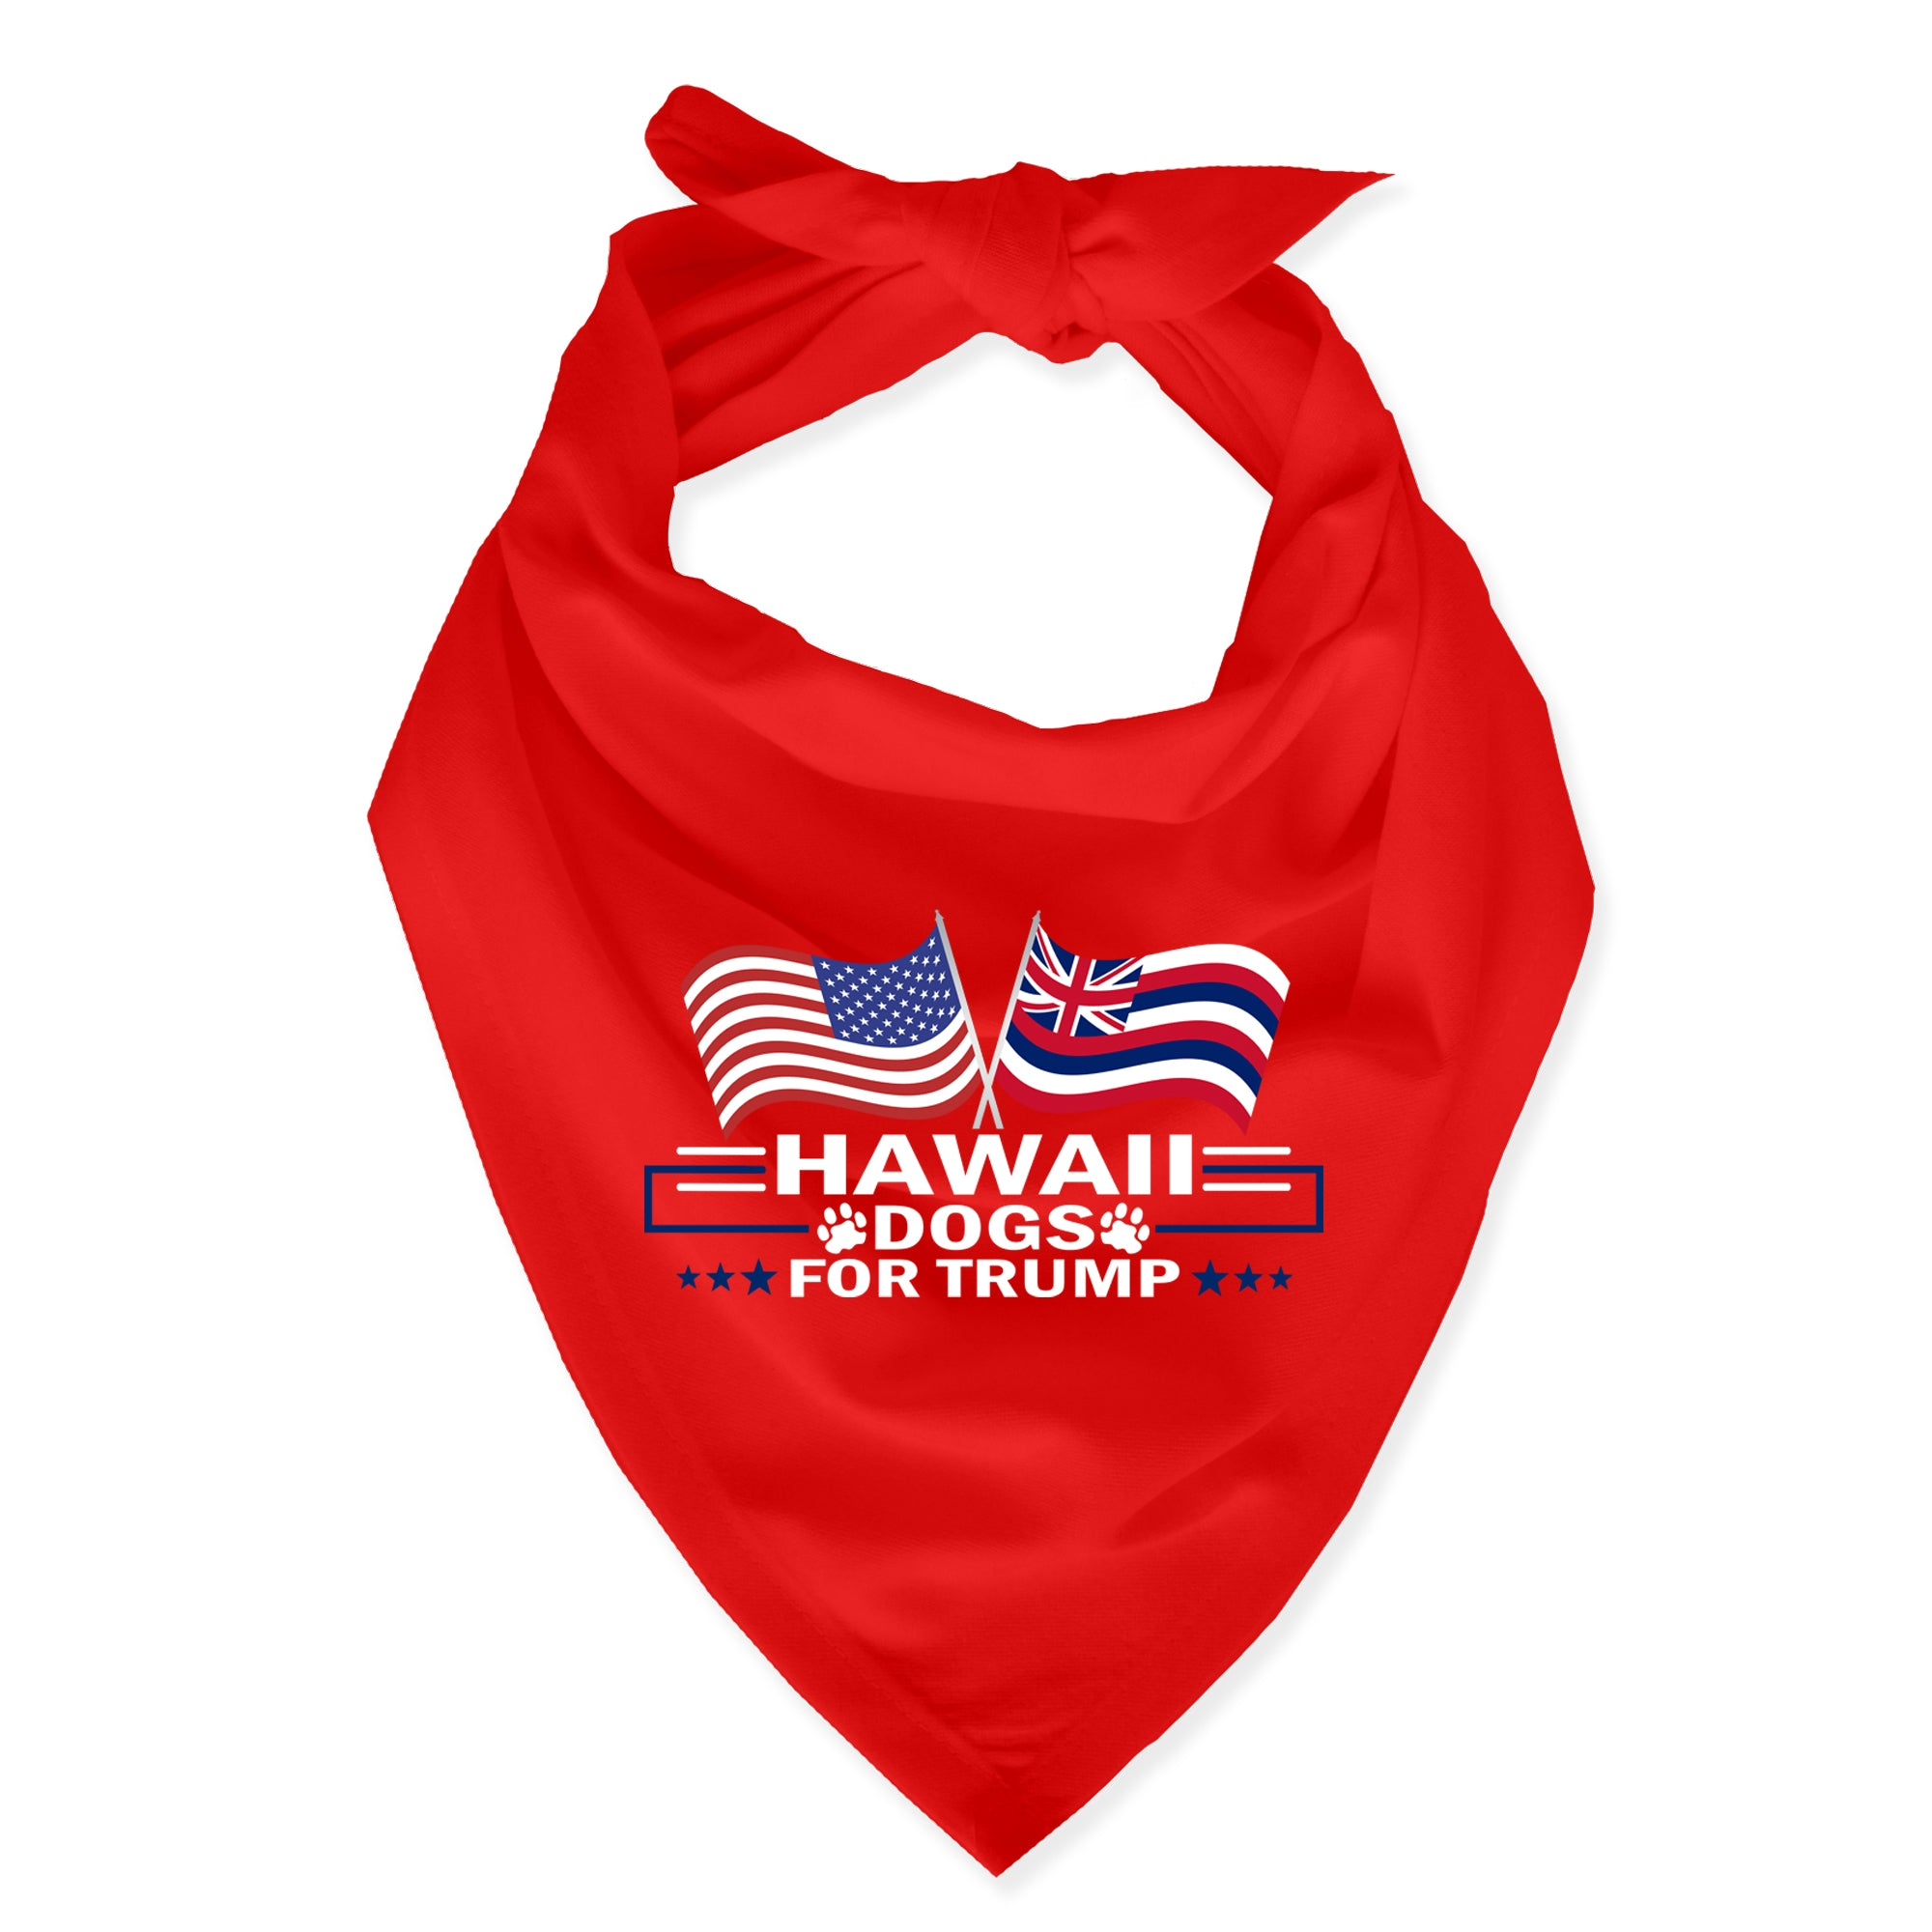 Hawaii For Trump Dog Bandana Limited Edition